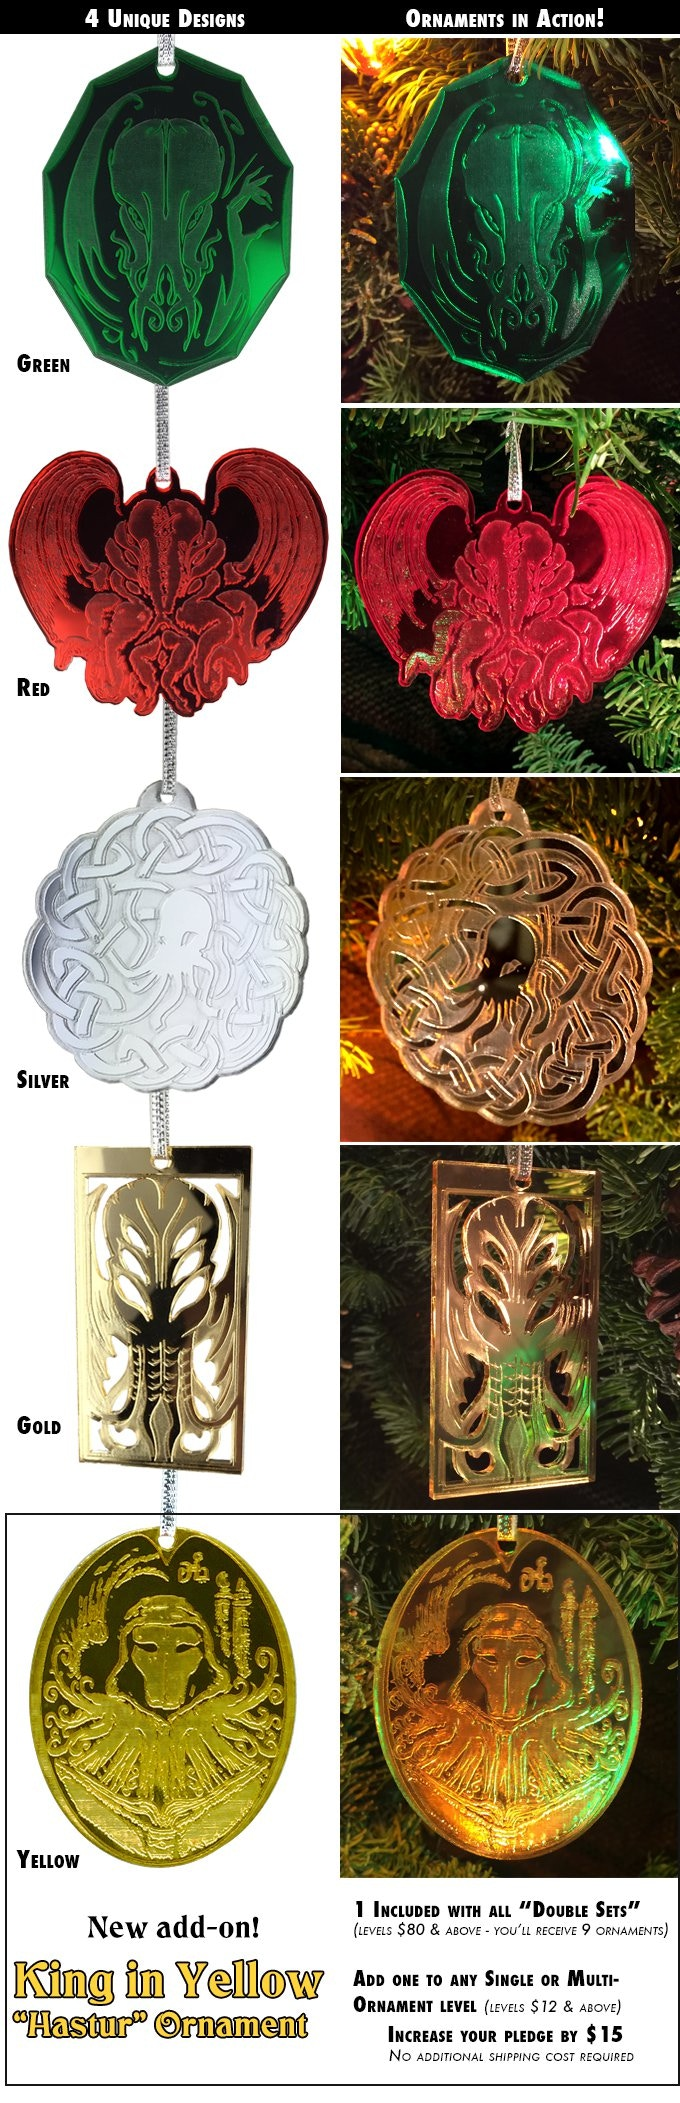 Shots of each ornament in white light, and in action with holiday lights. Level names correspond to these color/designs, or get a set with 1 Red & 1 Green, 1 Silver & 1 Gold, or all 4! PLUS New King in Yellow add-on unlocked.